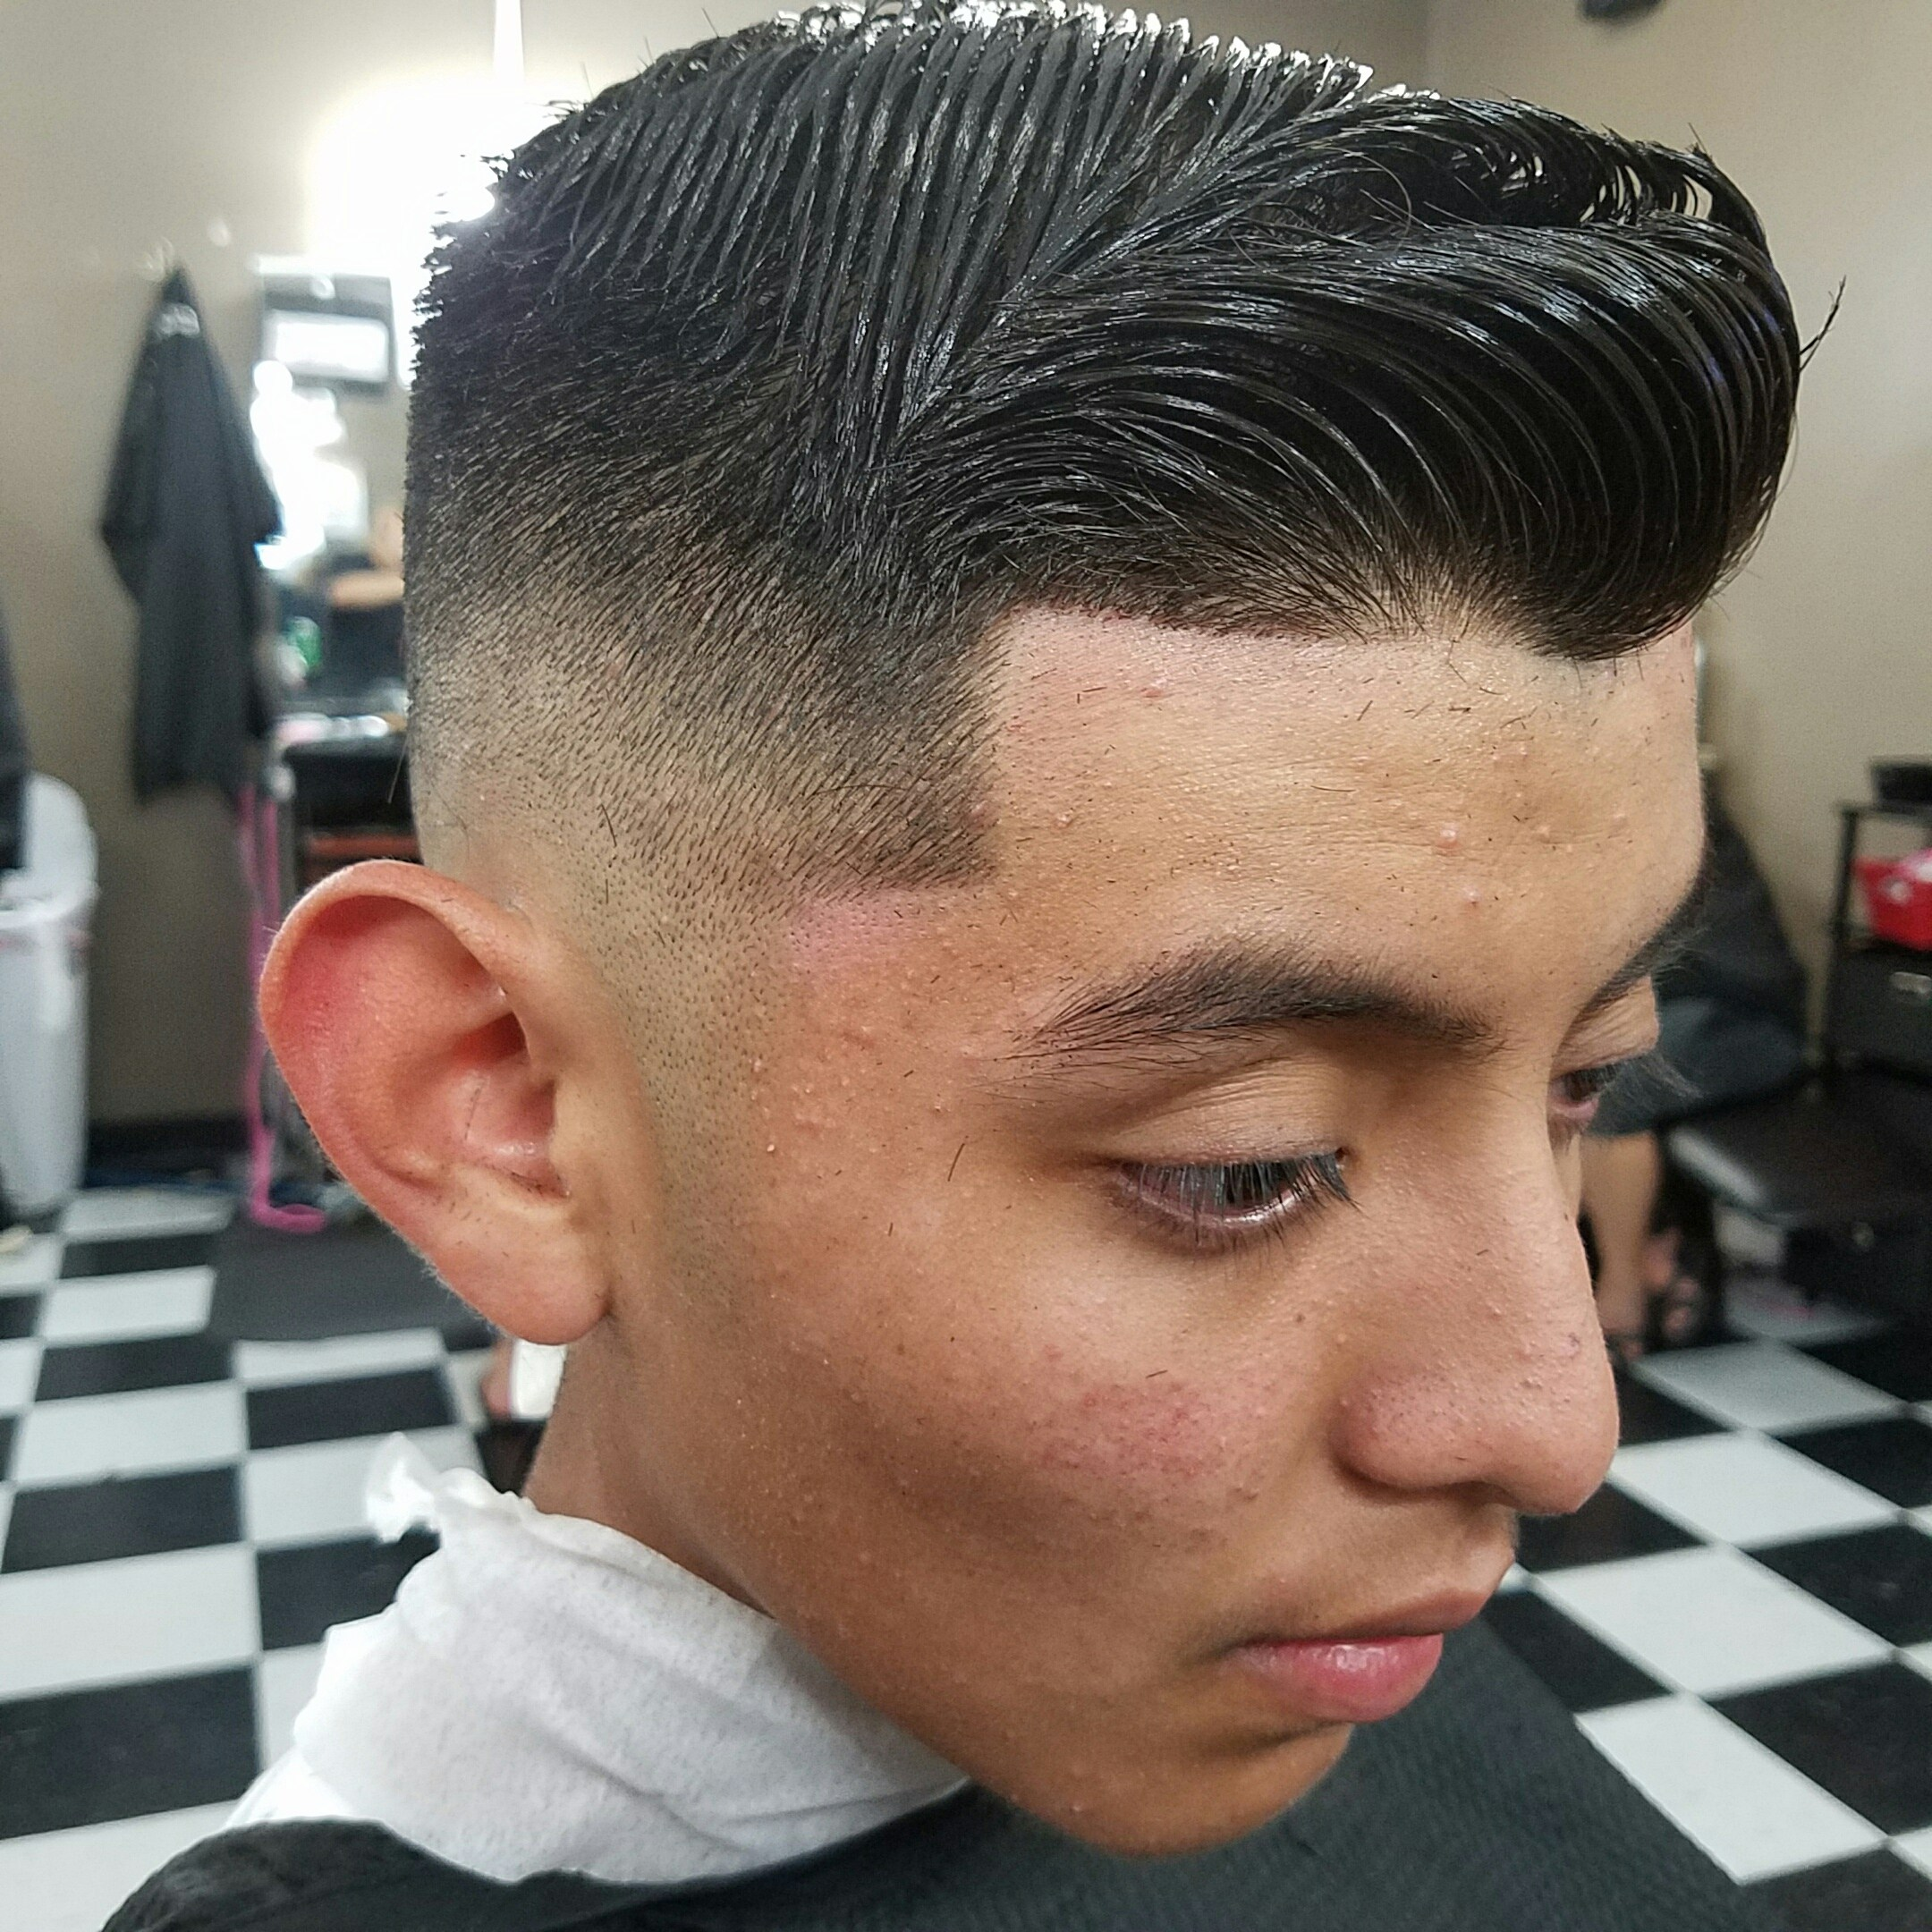 Taper Haircut Pictures | Bald Fade | Taper Hairstyles